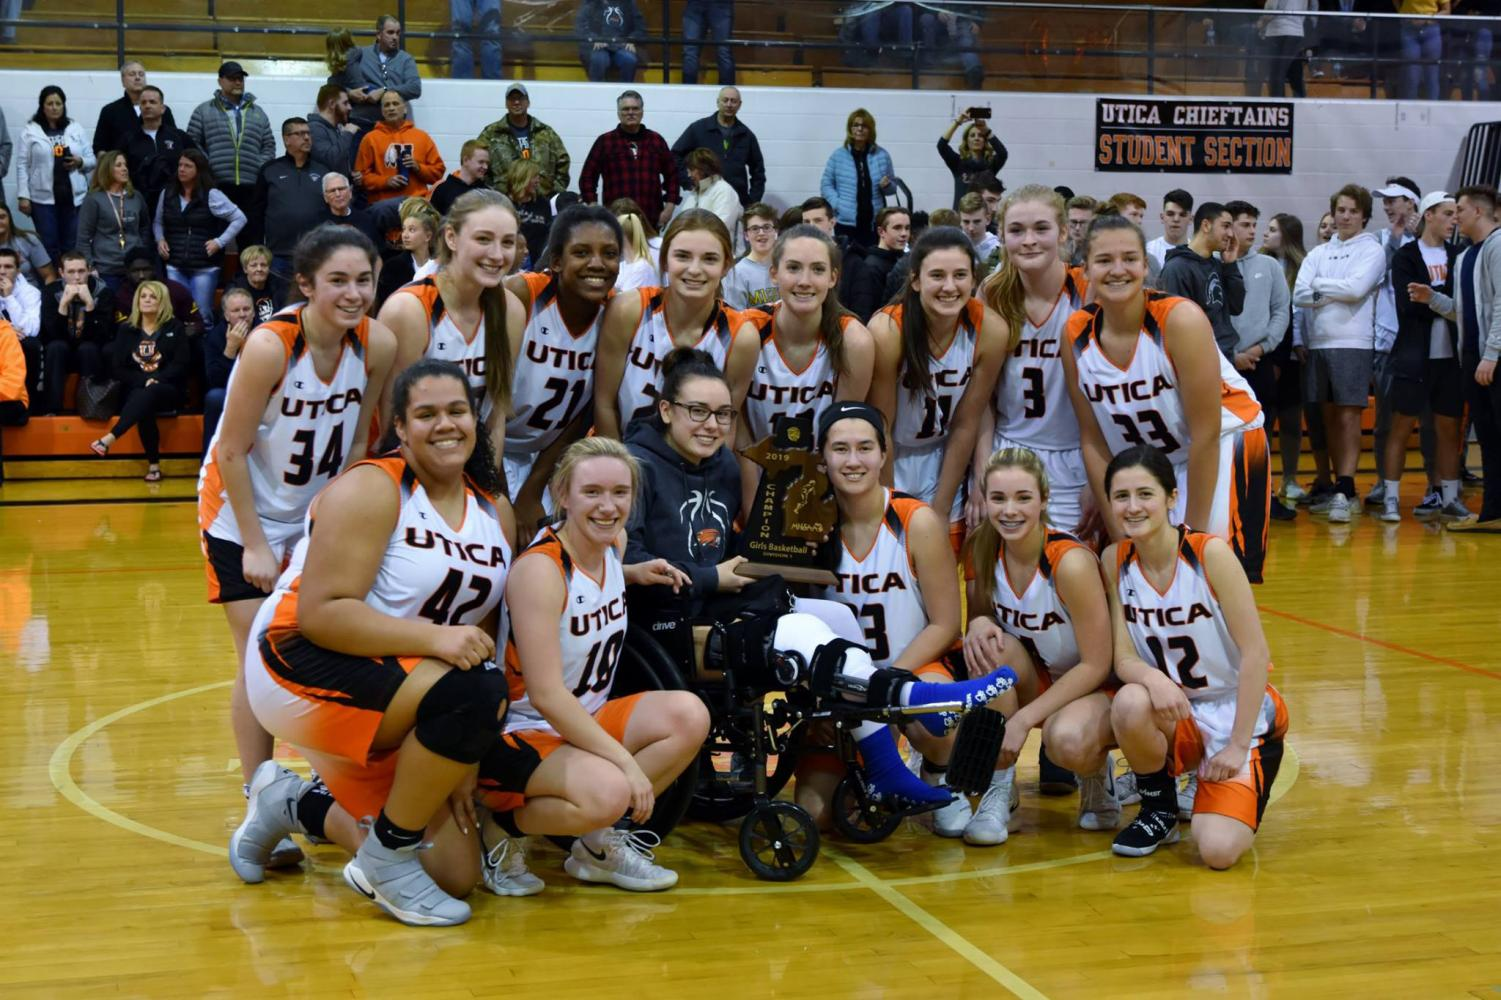 The team pictured after winning the district finals.